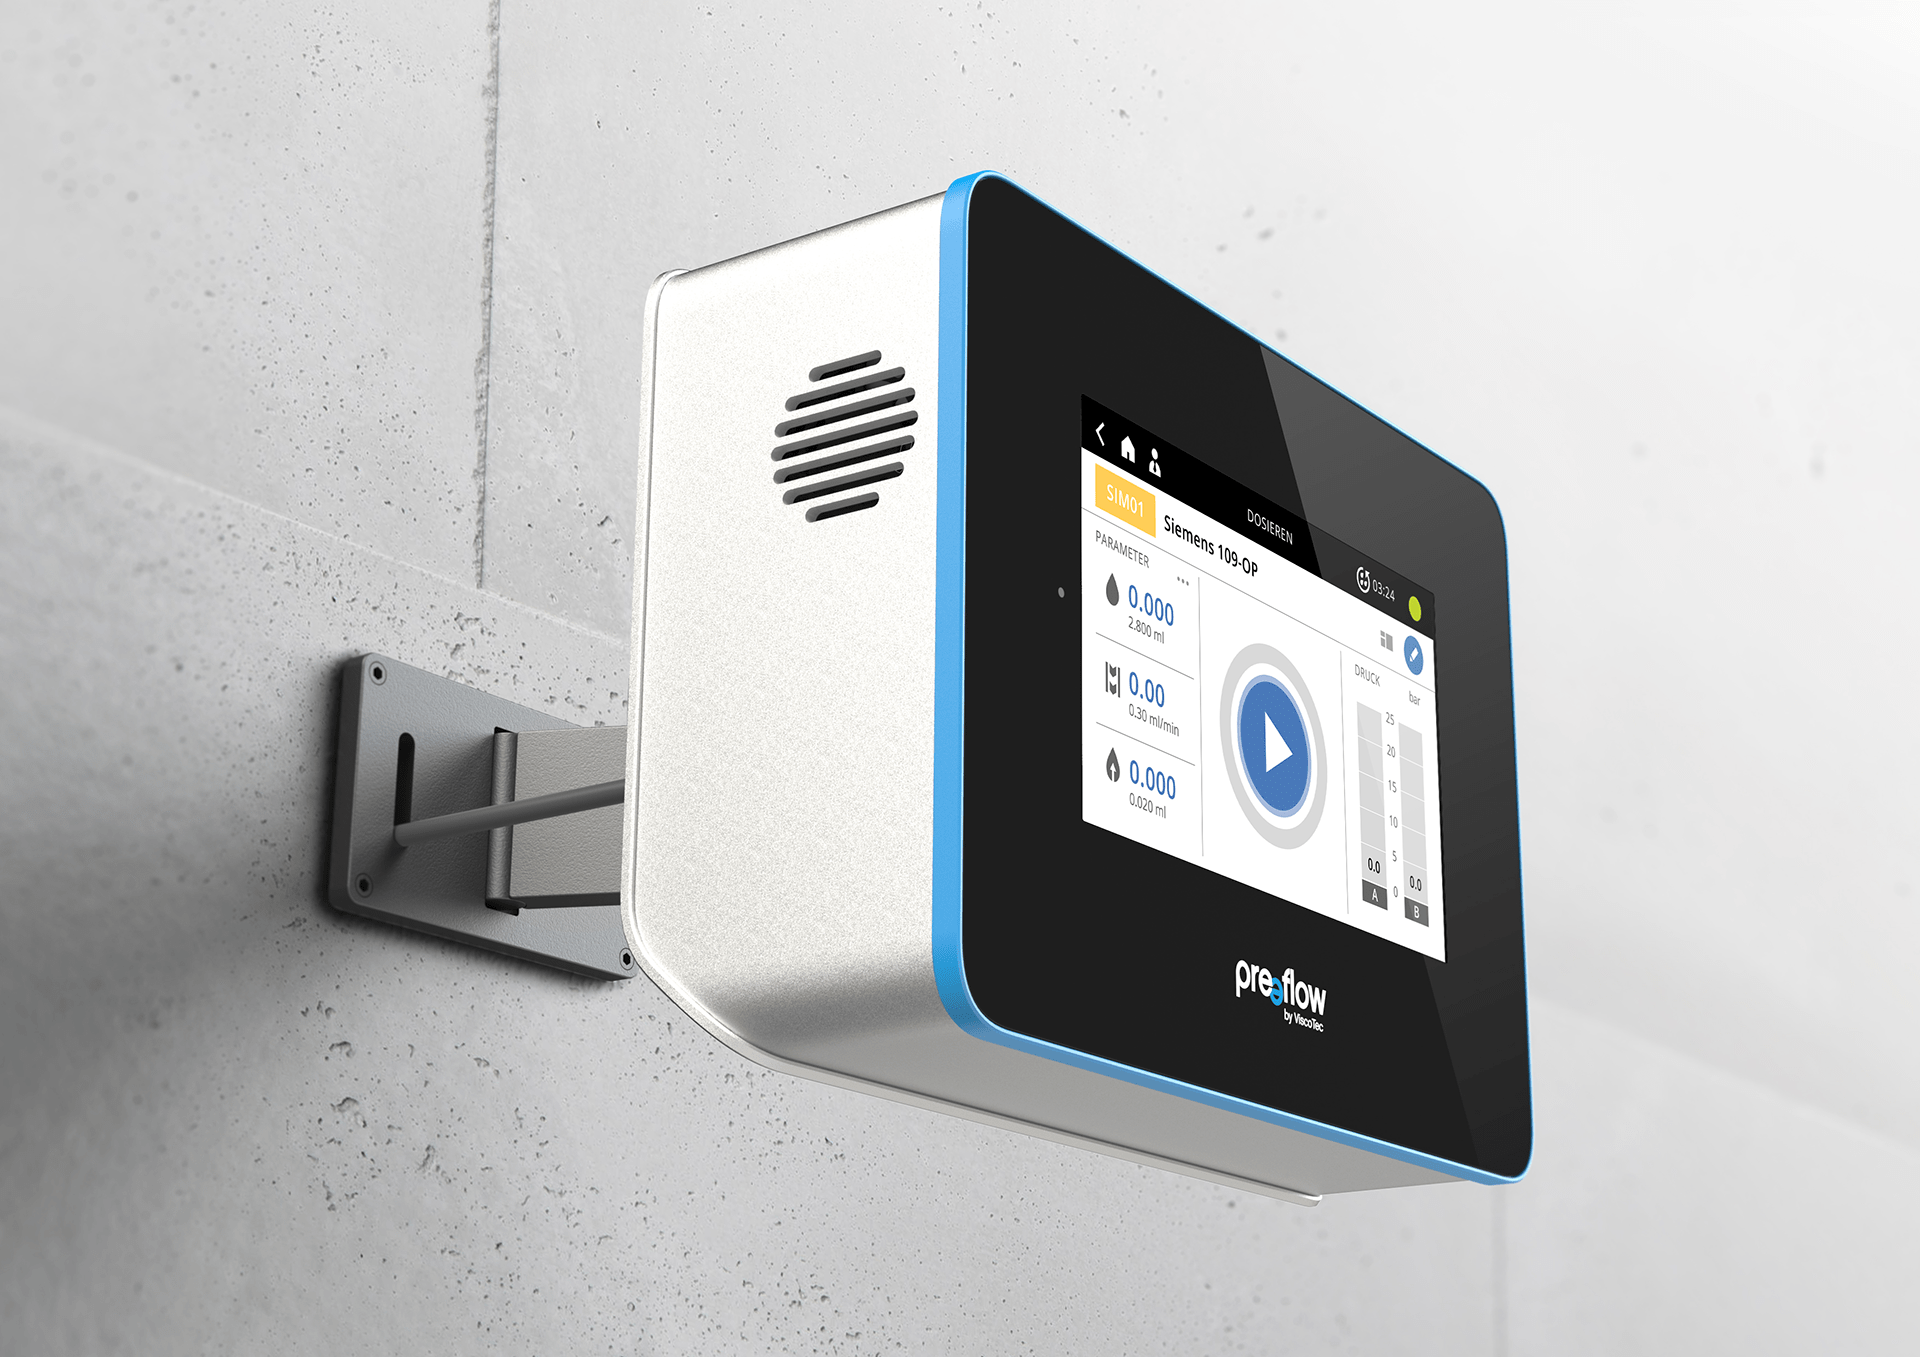 The ViscoTec eco 200 is mounted on a wall and shows the main screen of the user interface